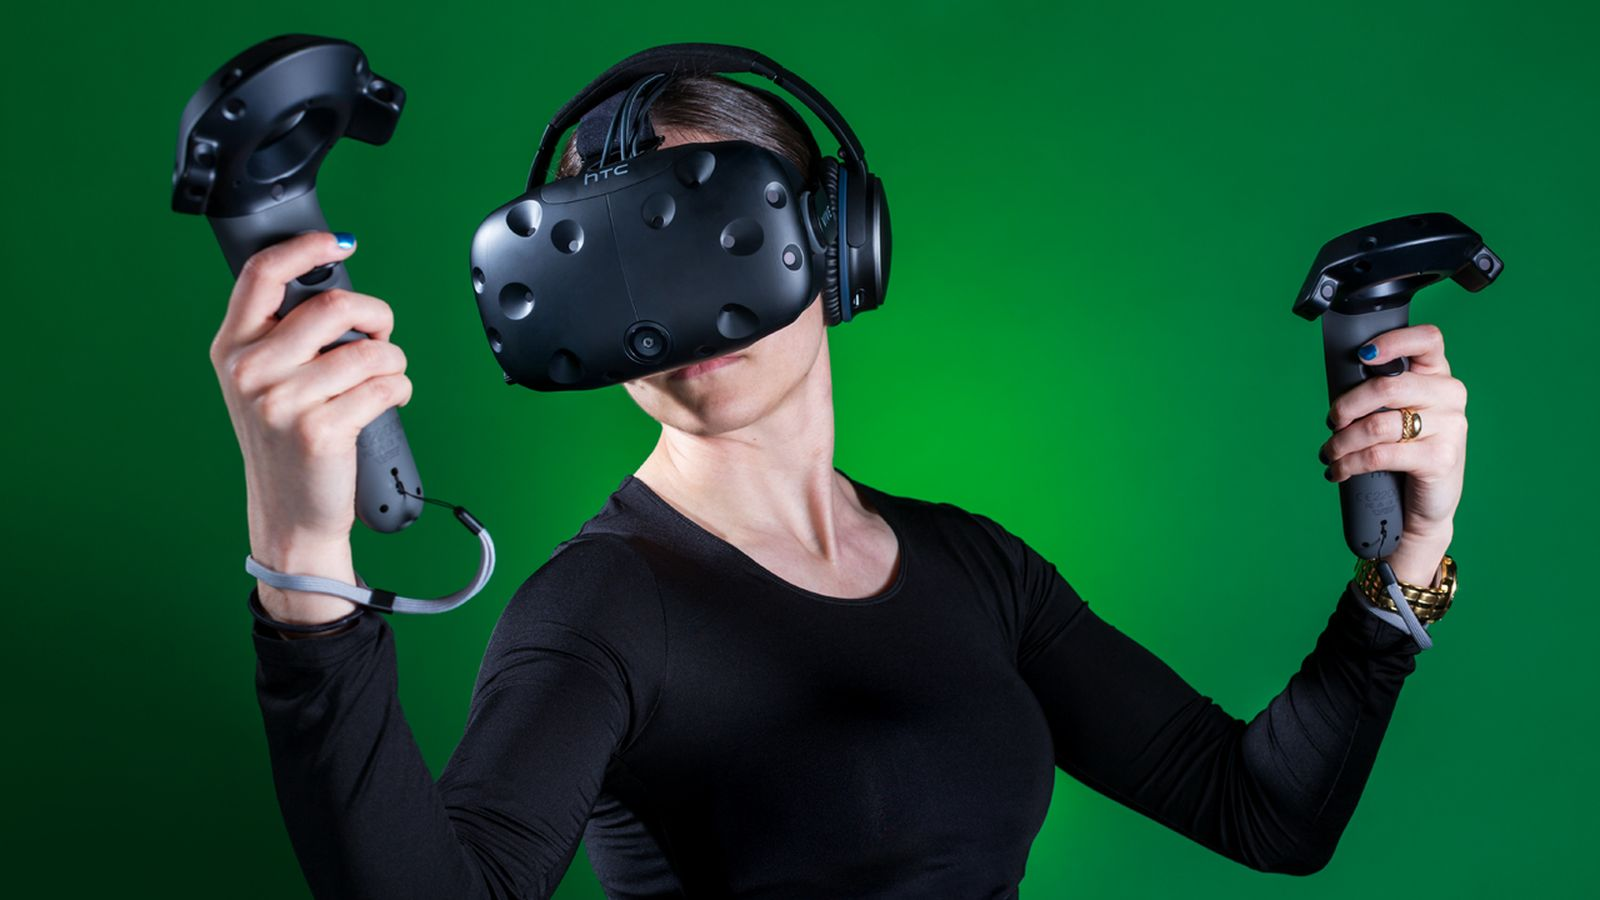 HTC Vive VR device